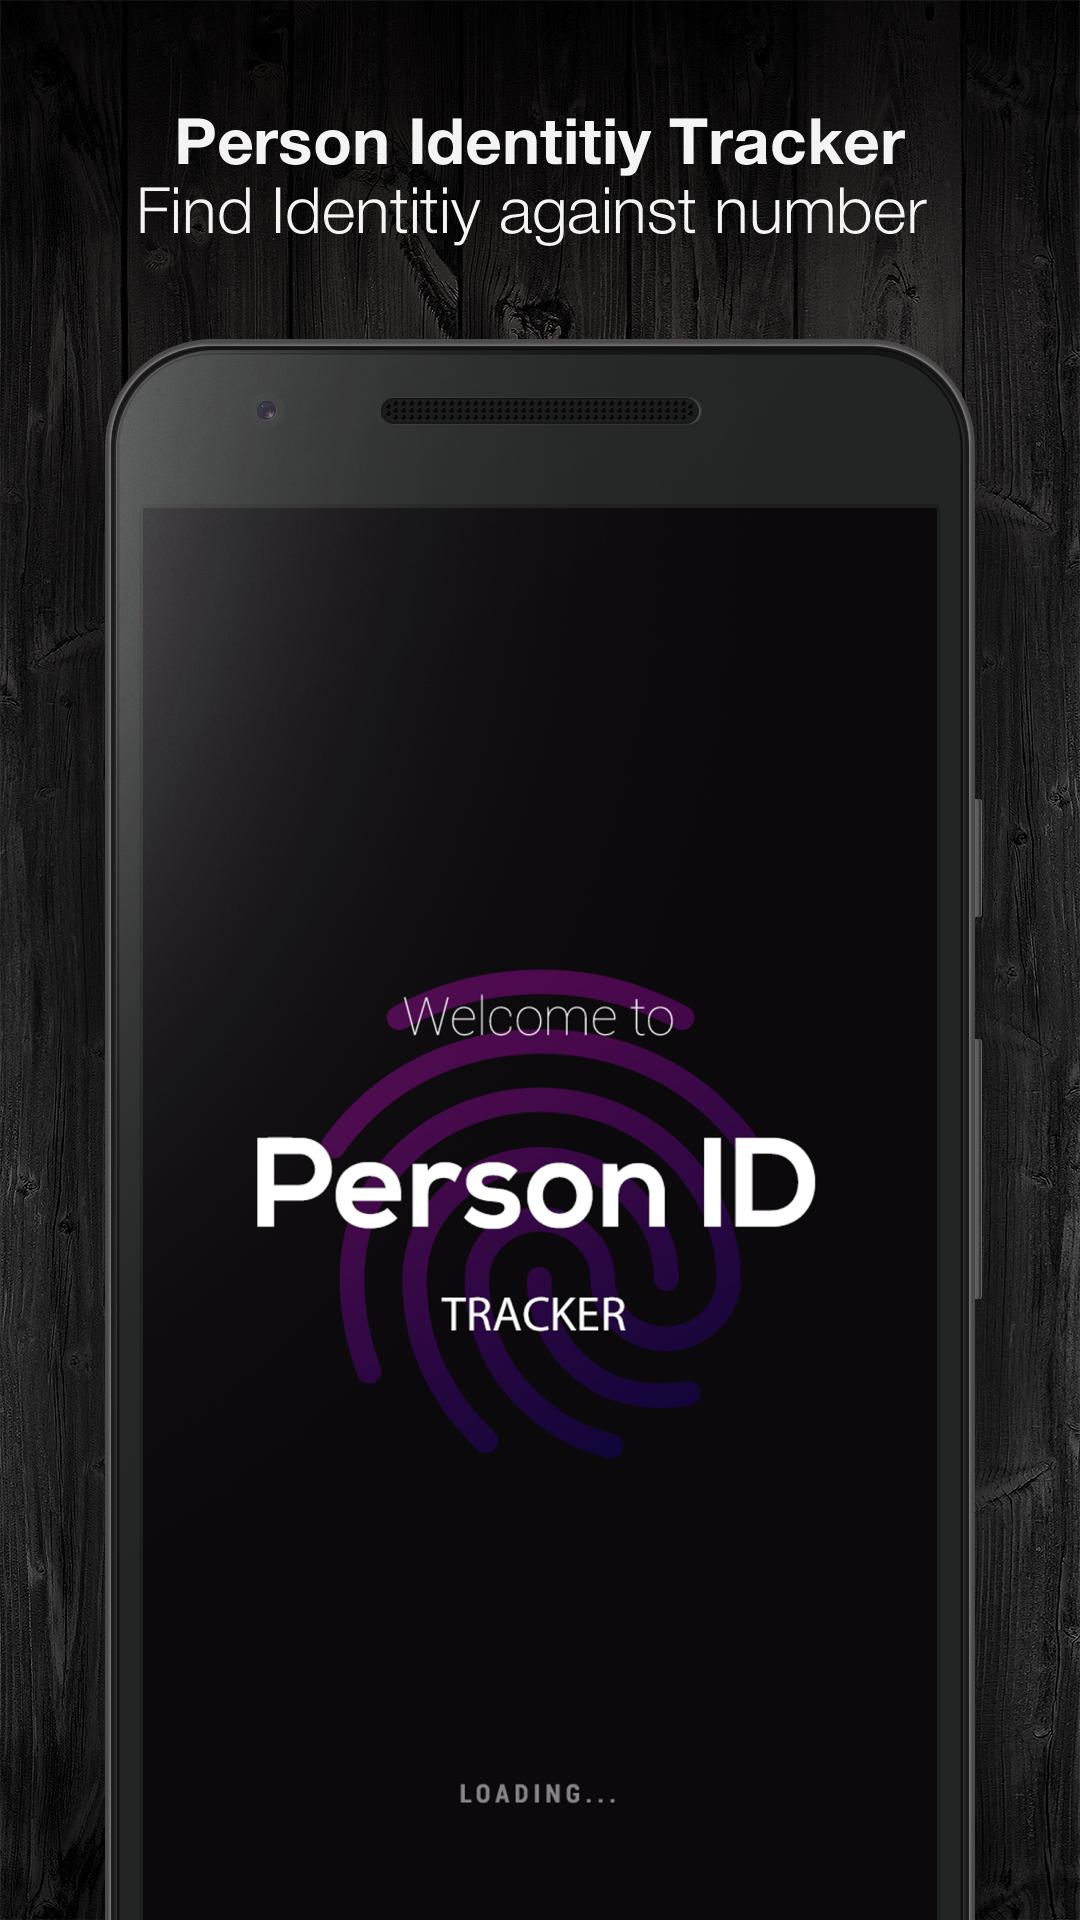 Person ID Tracker for Android - APK Download